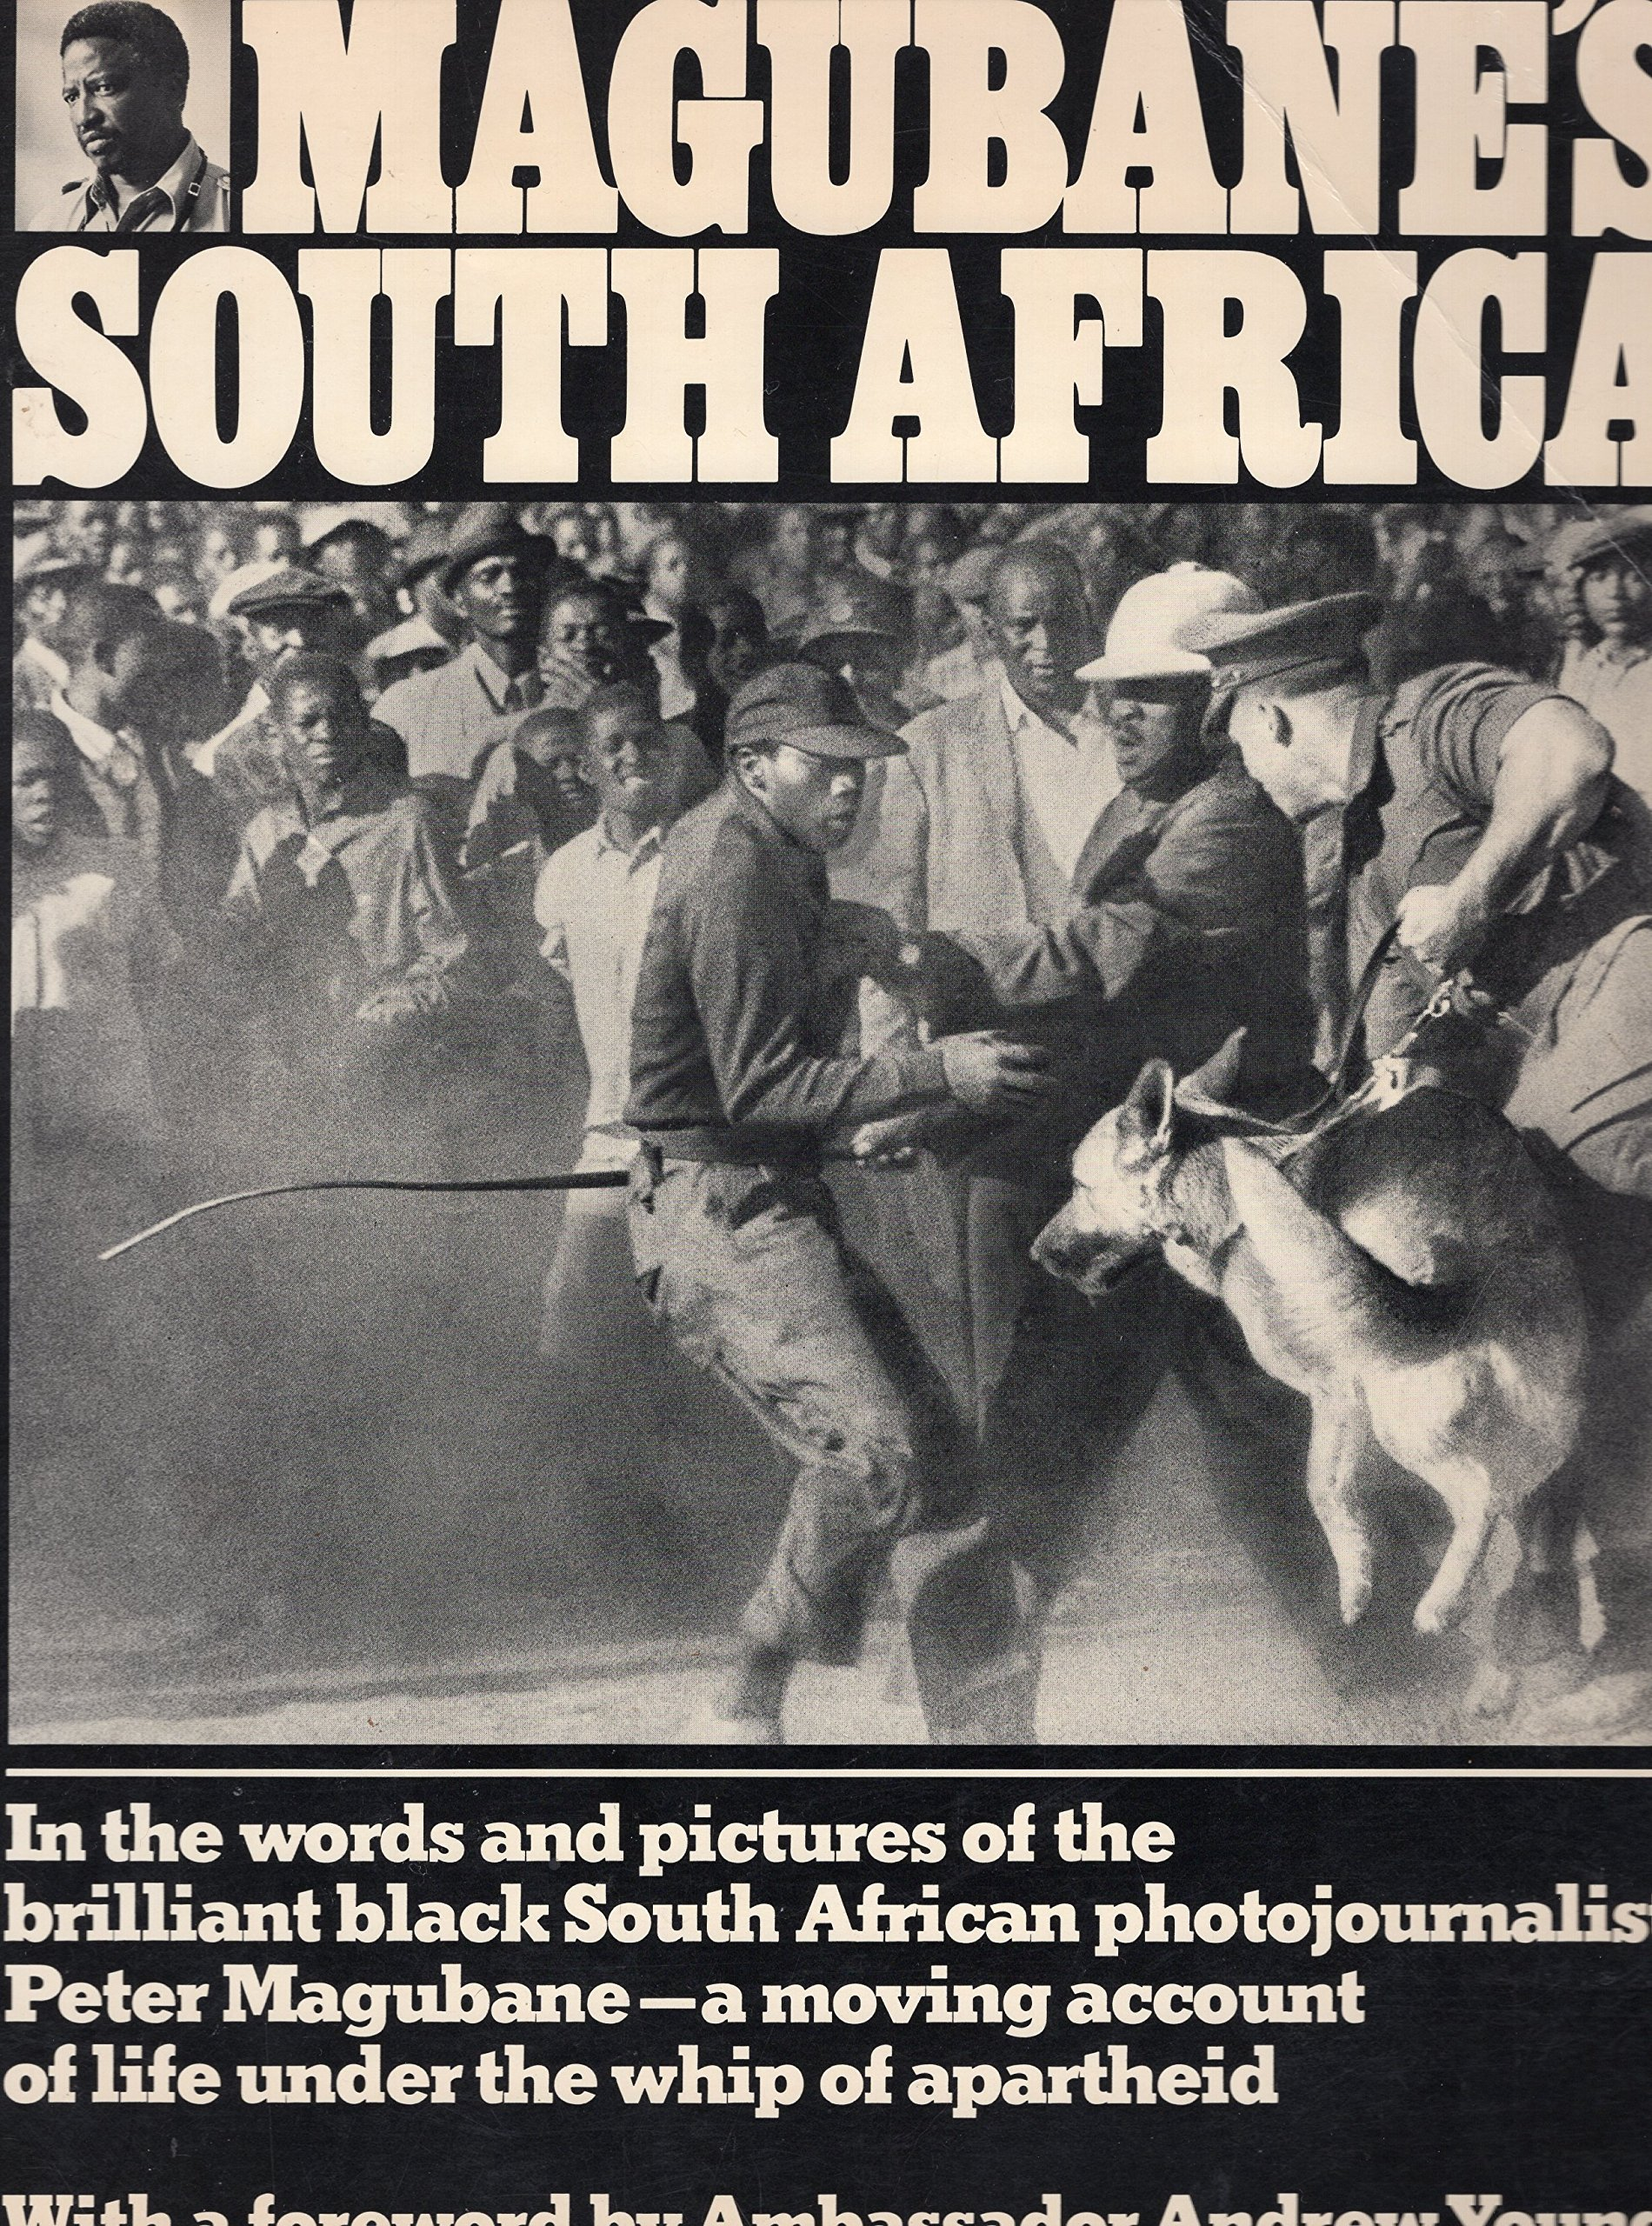 Magubane's South Africa (1978)